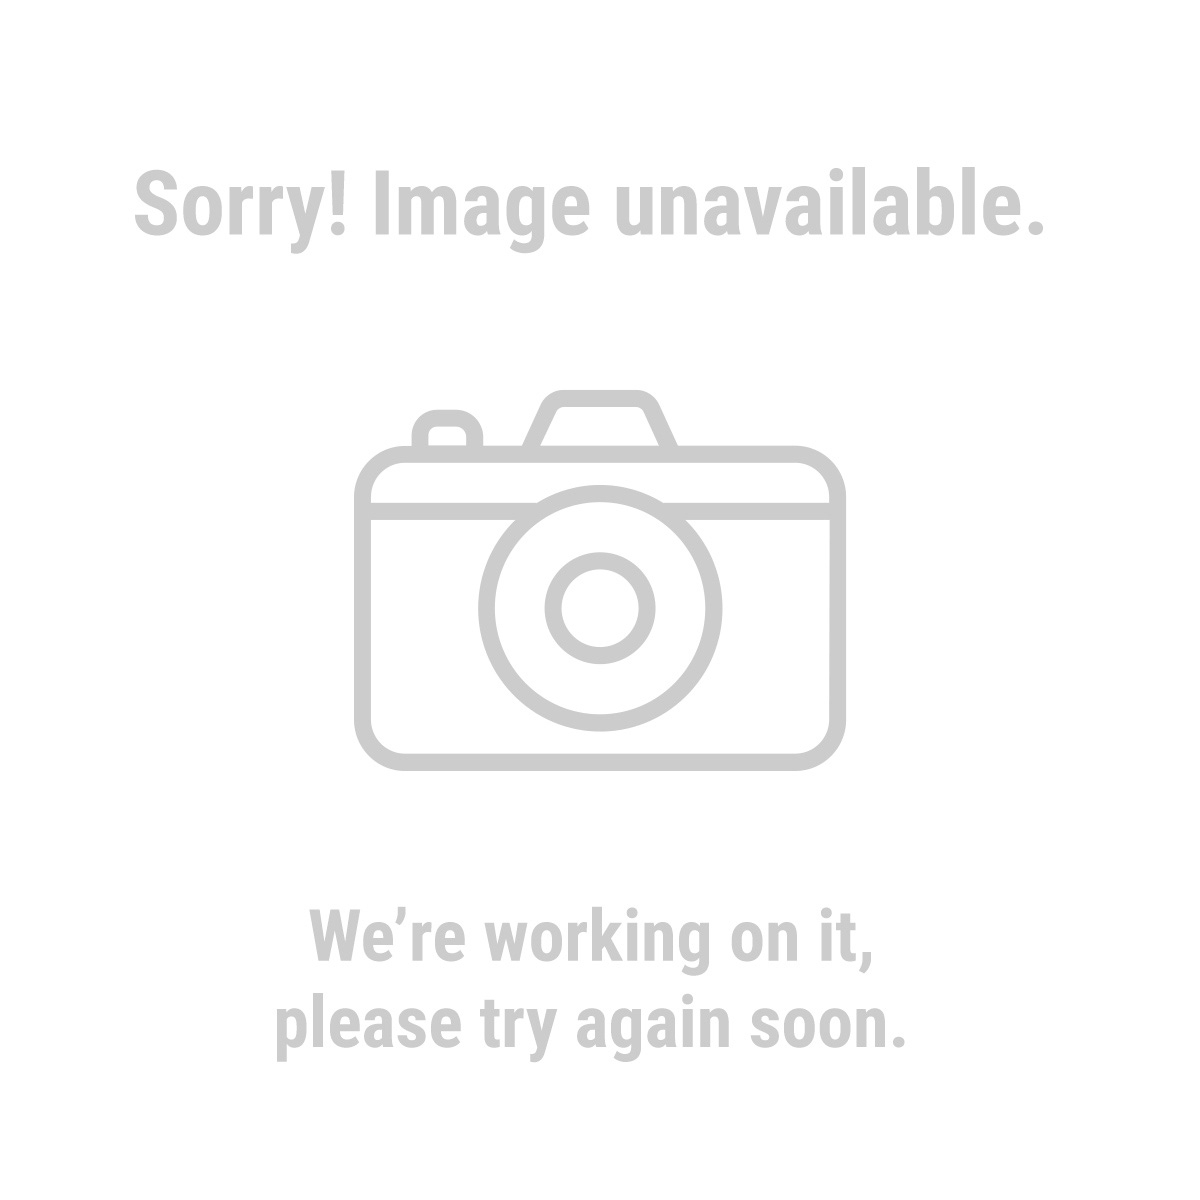 "Finch & McClay 1422 4"" Natural Bristle Paint Brush"